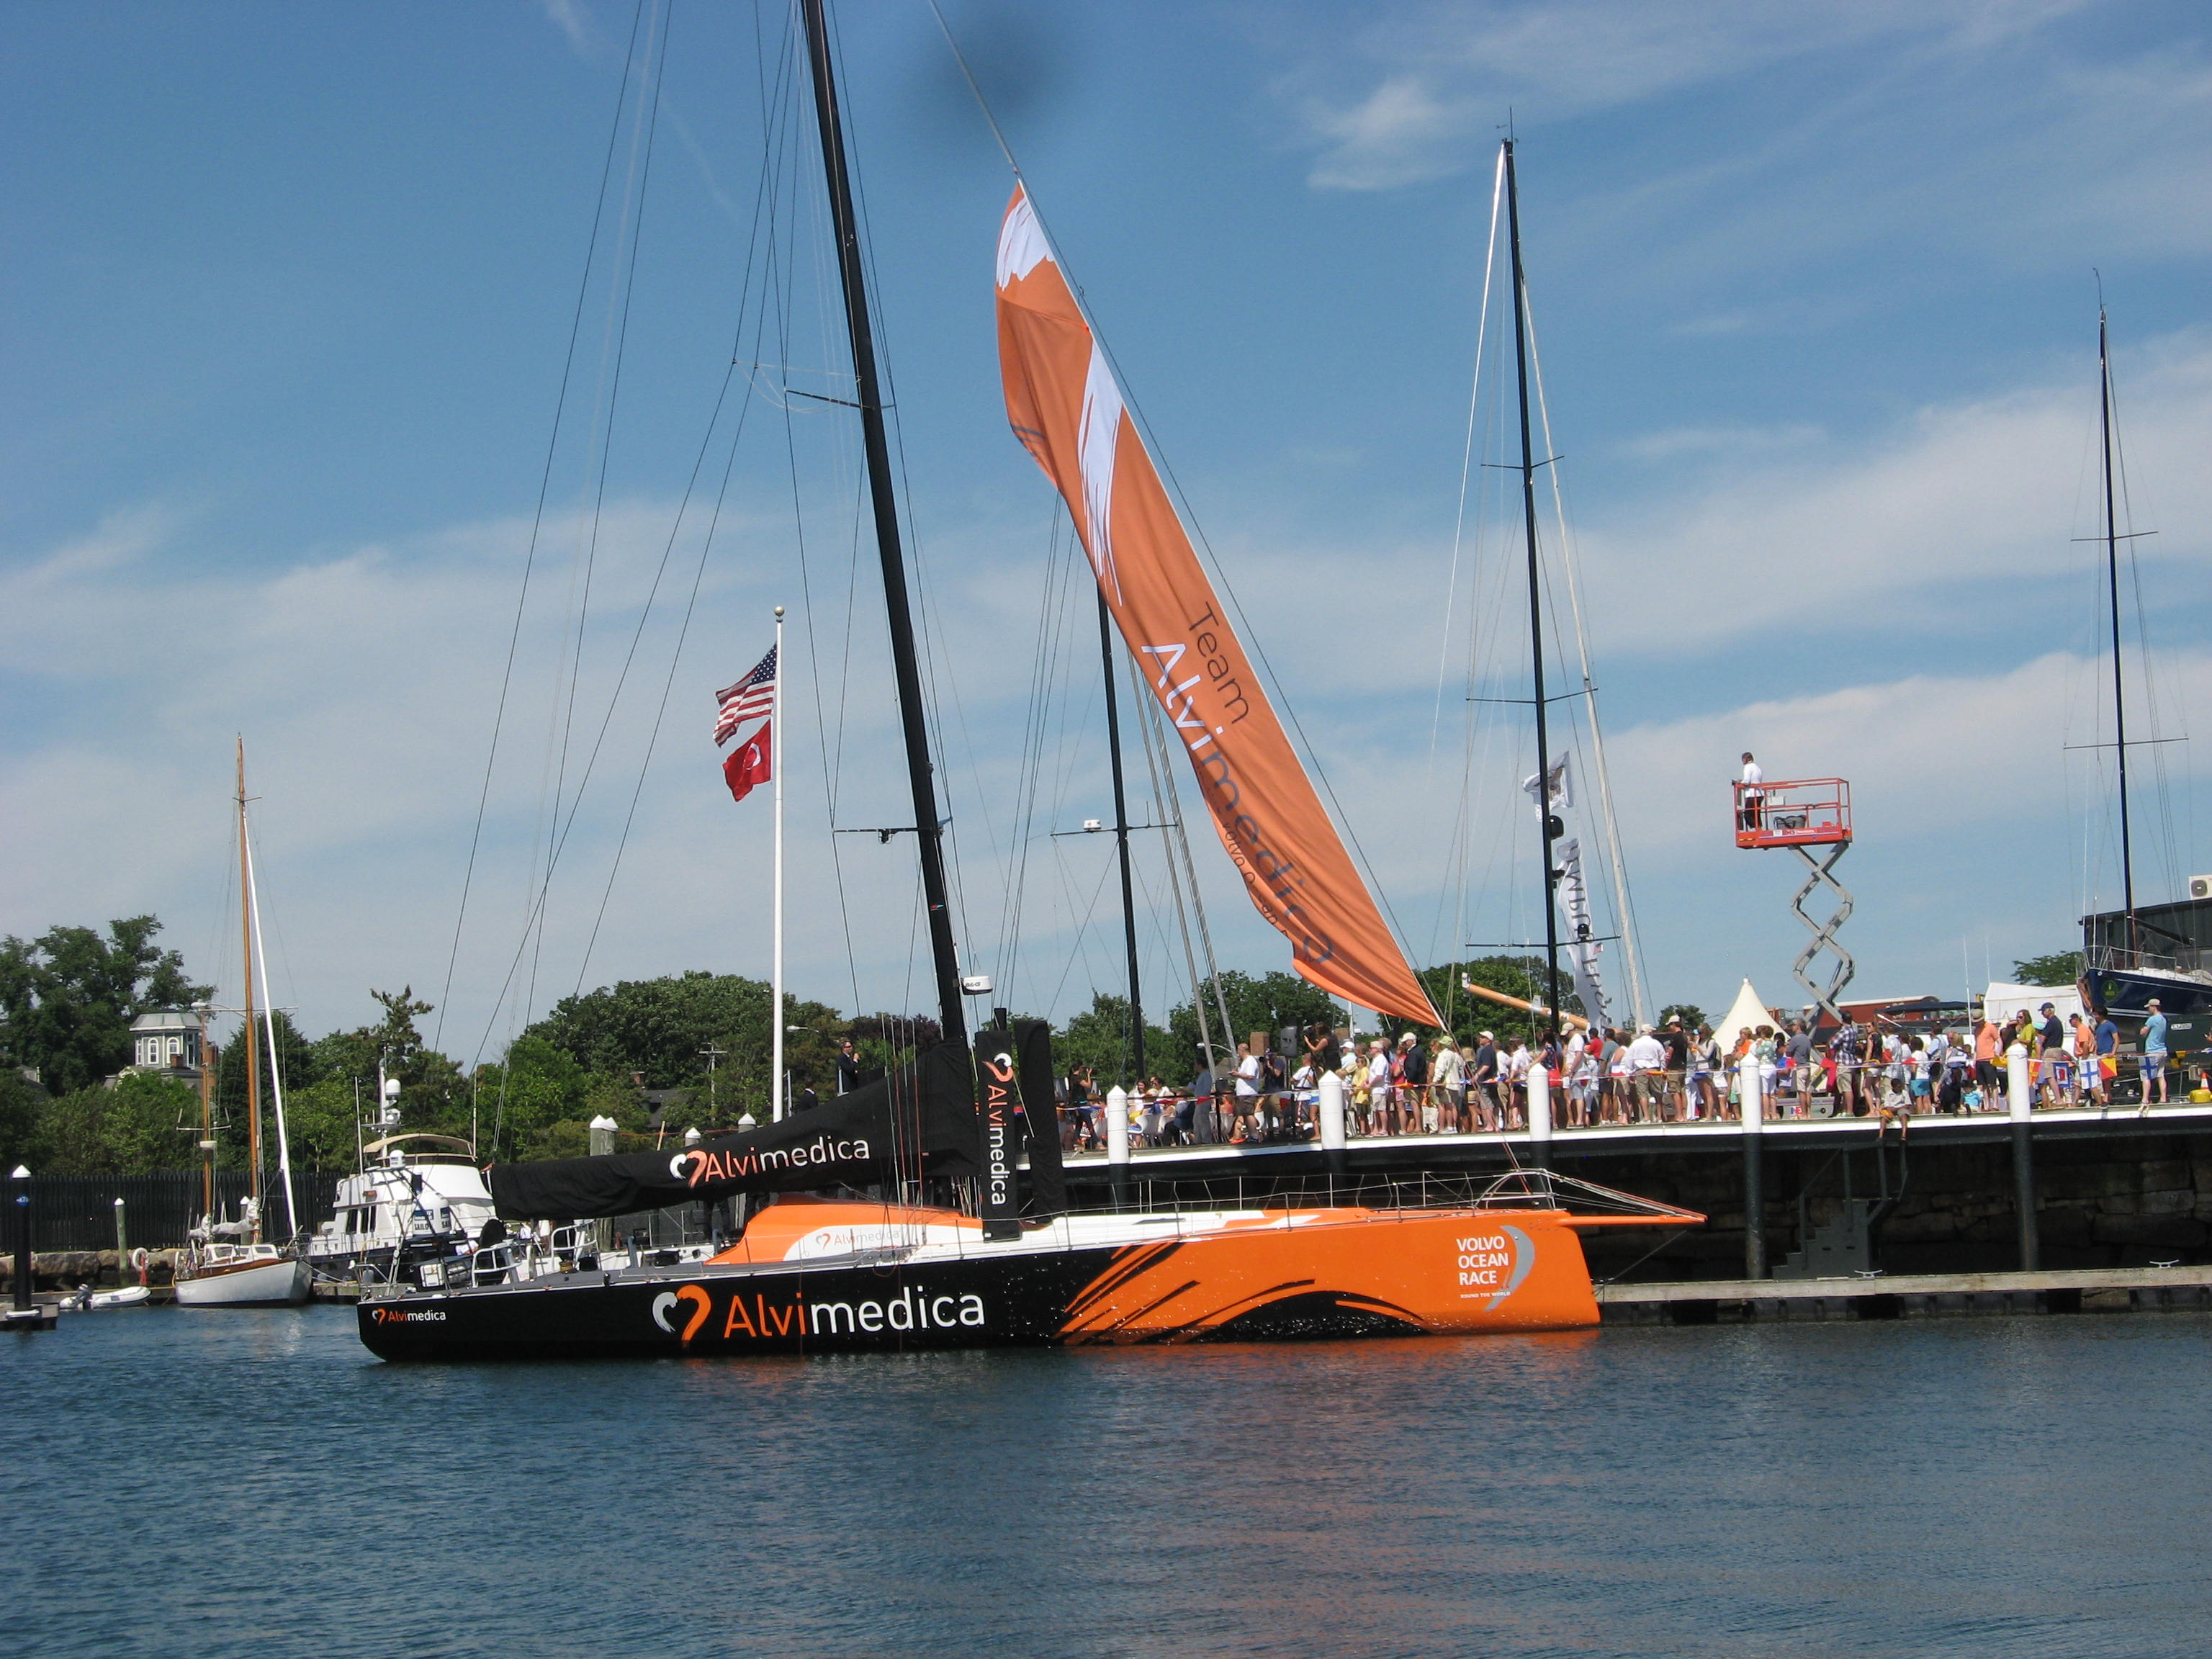 US entry in the 2014/15 Volvo Ocean Race